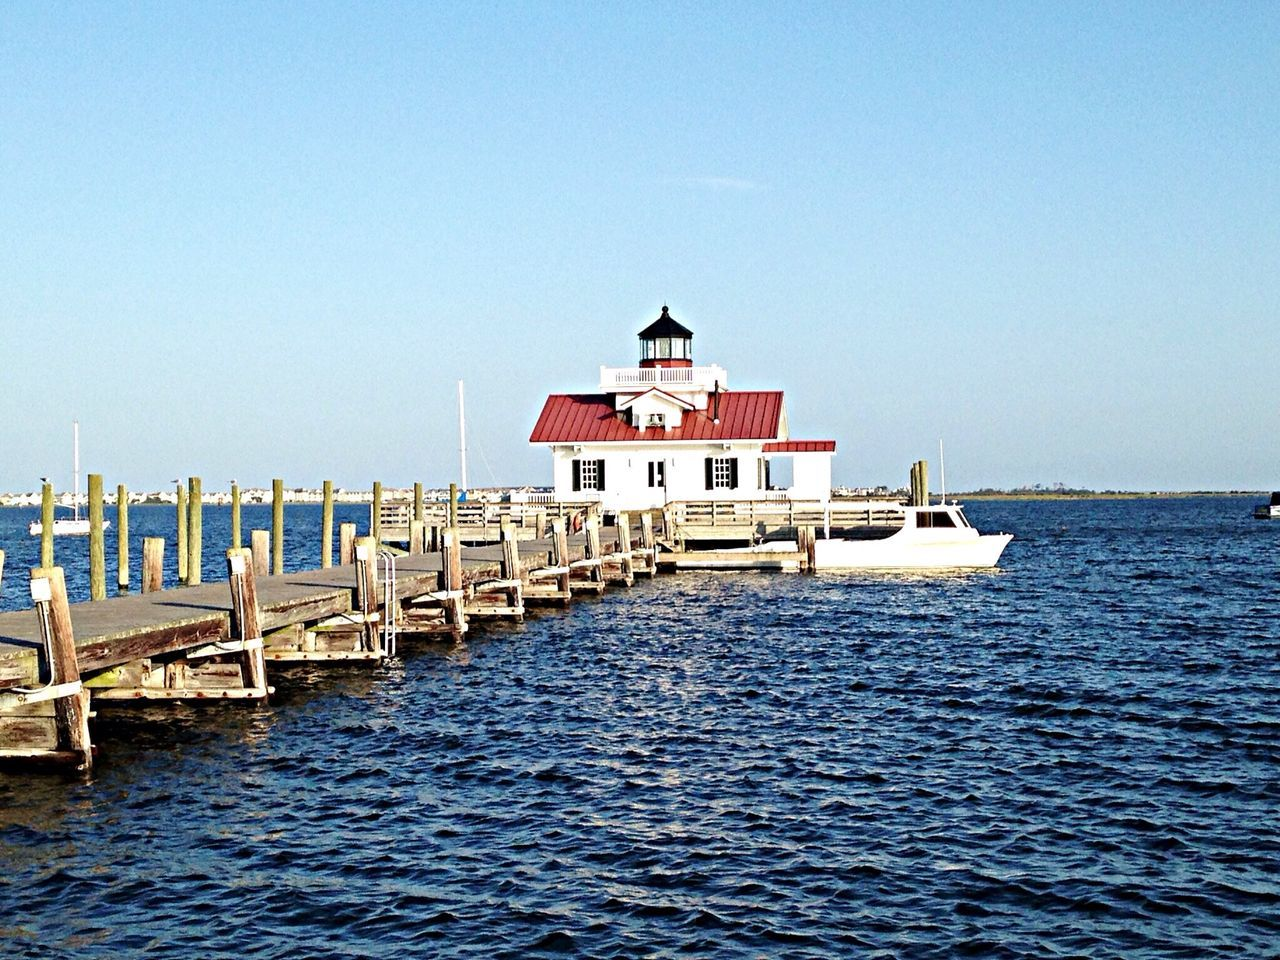 Another view of Roanoke Marshes Lighthouse in North Carolina. OBX14 Lighthouse Water Traveling